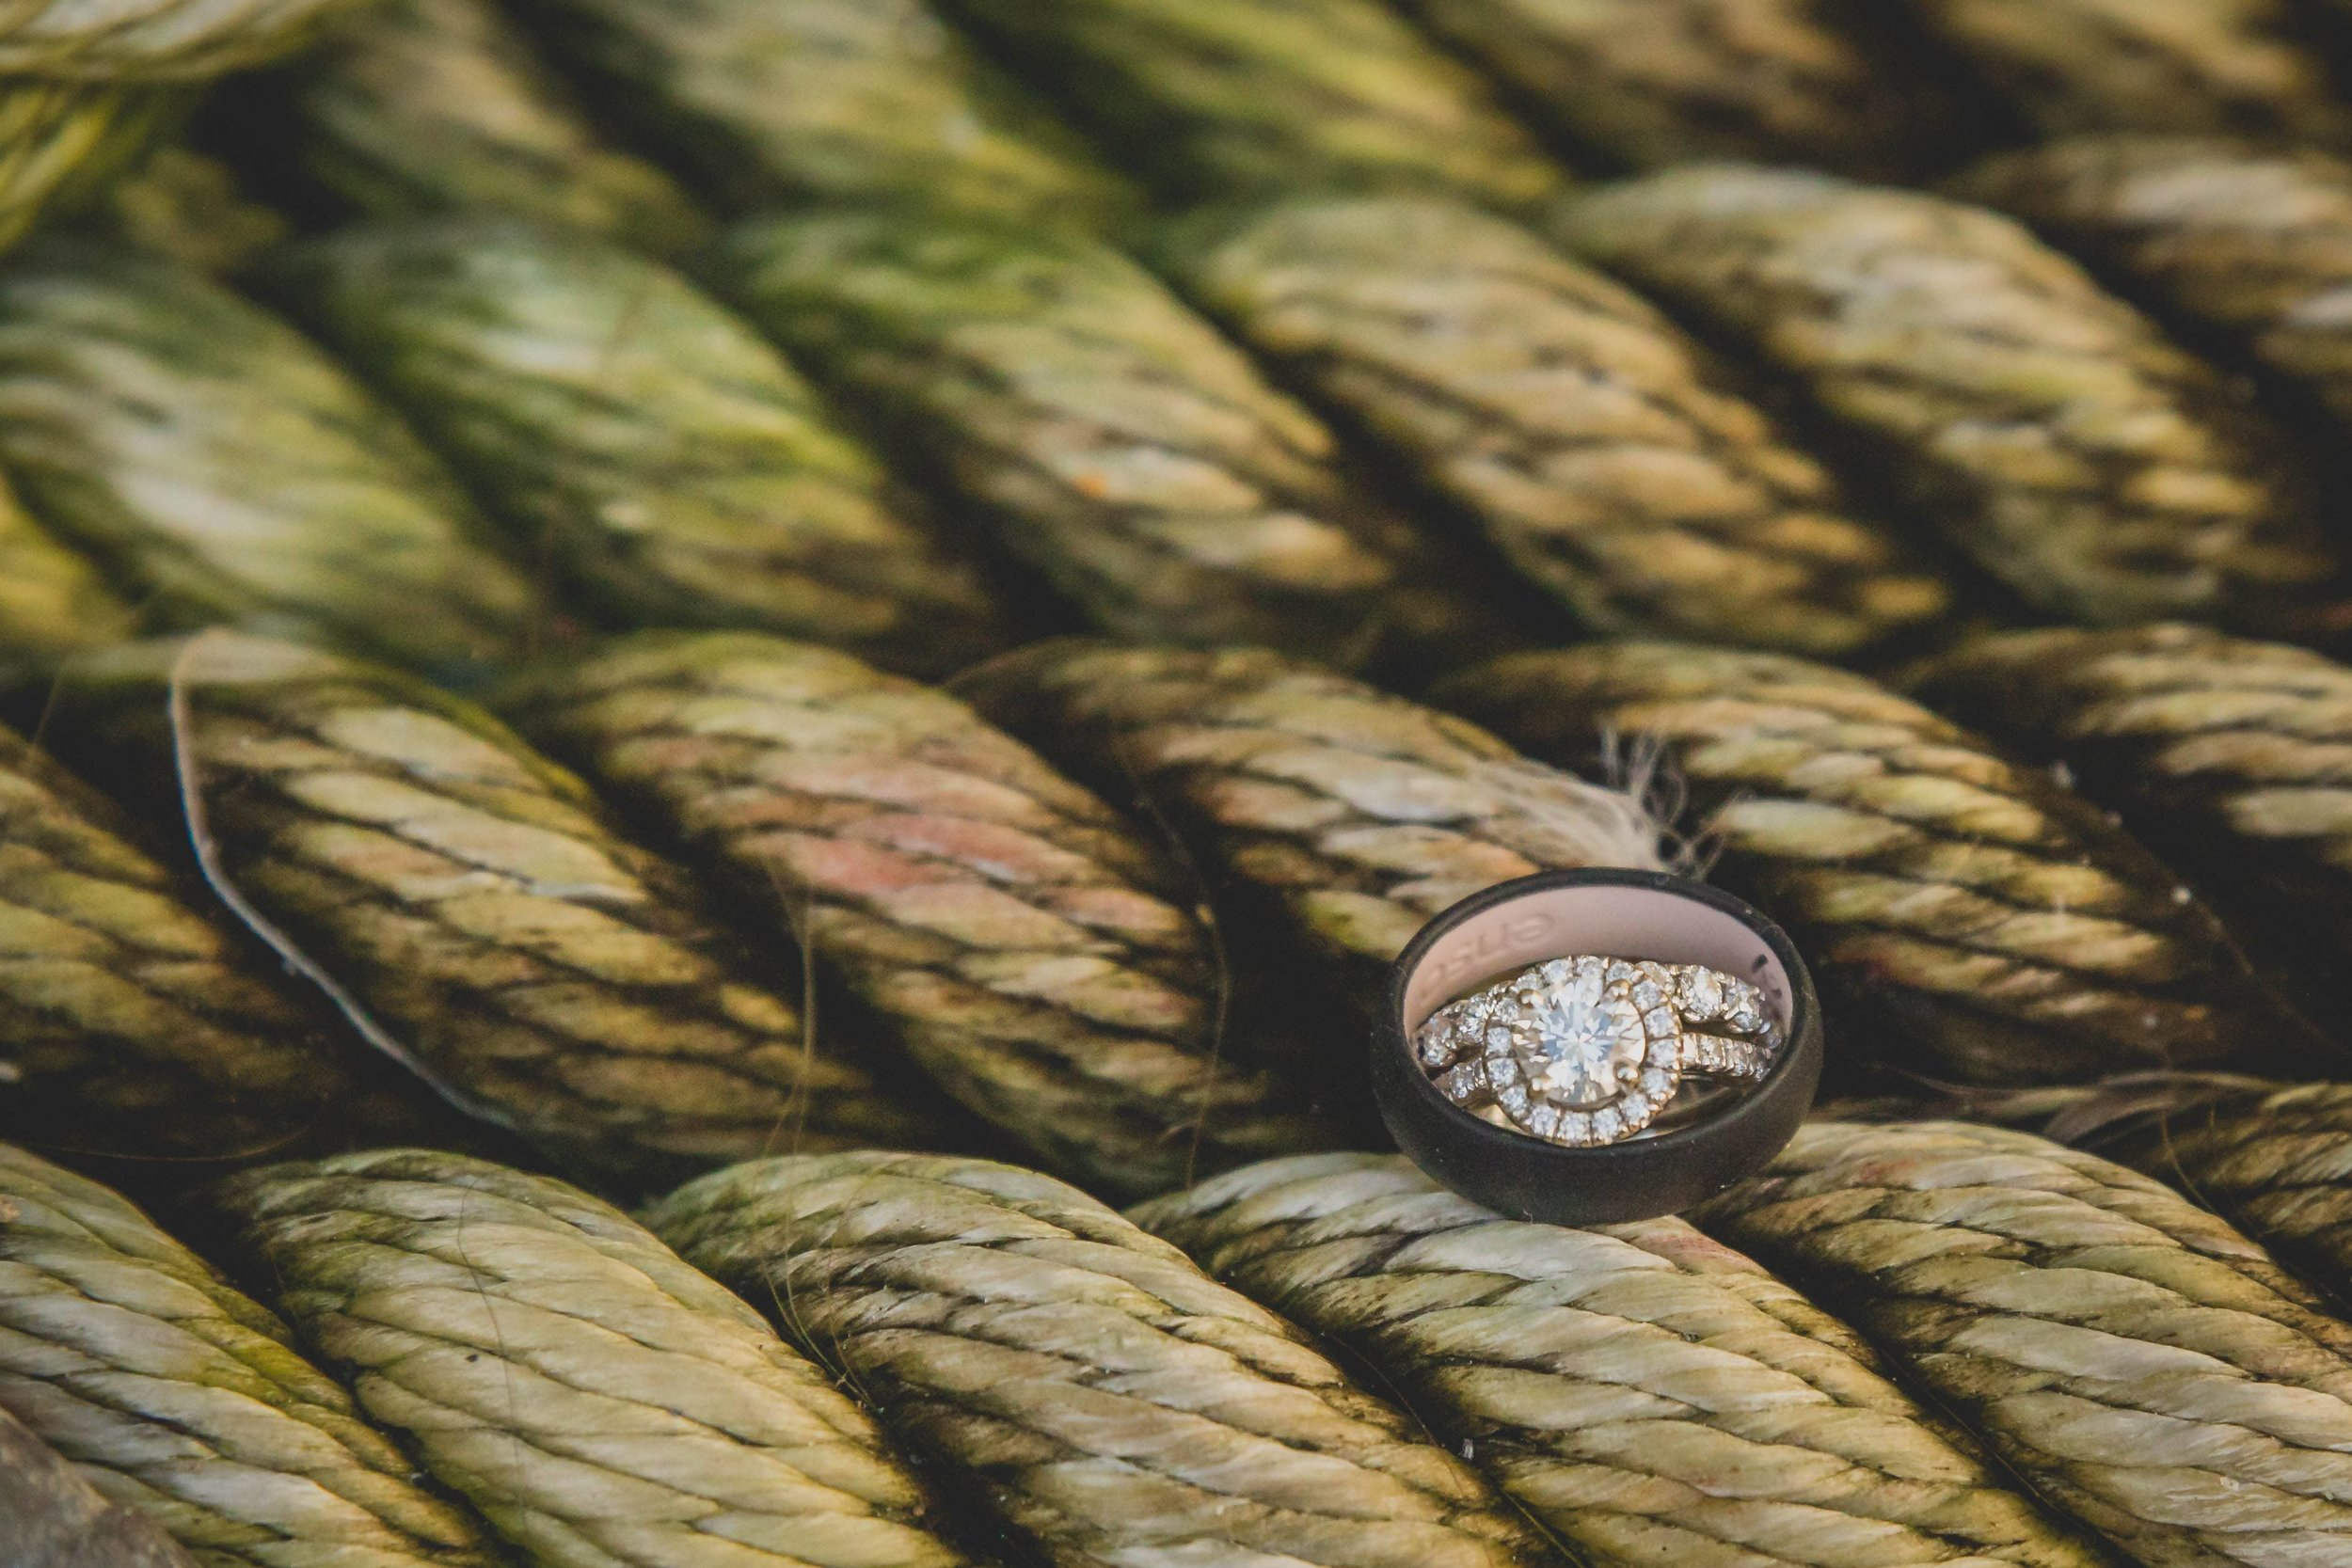 Wedding bands perched on the thick rope of ship.